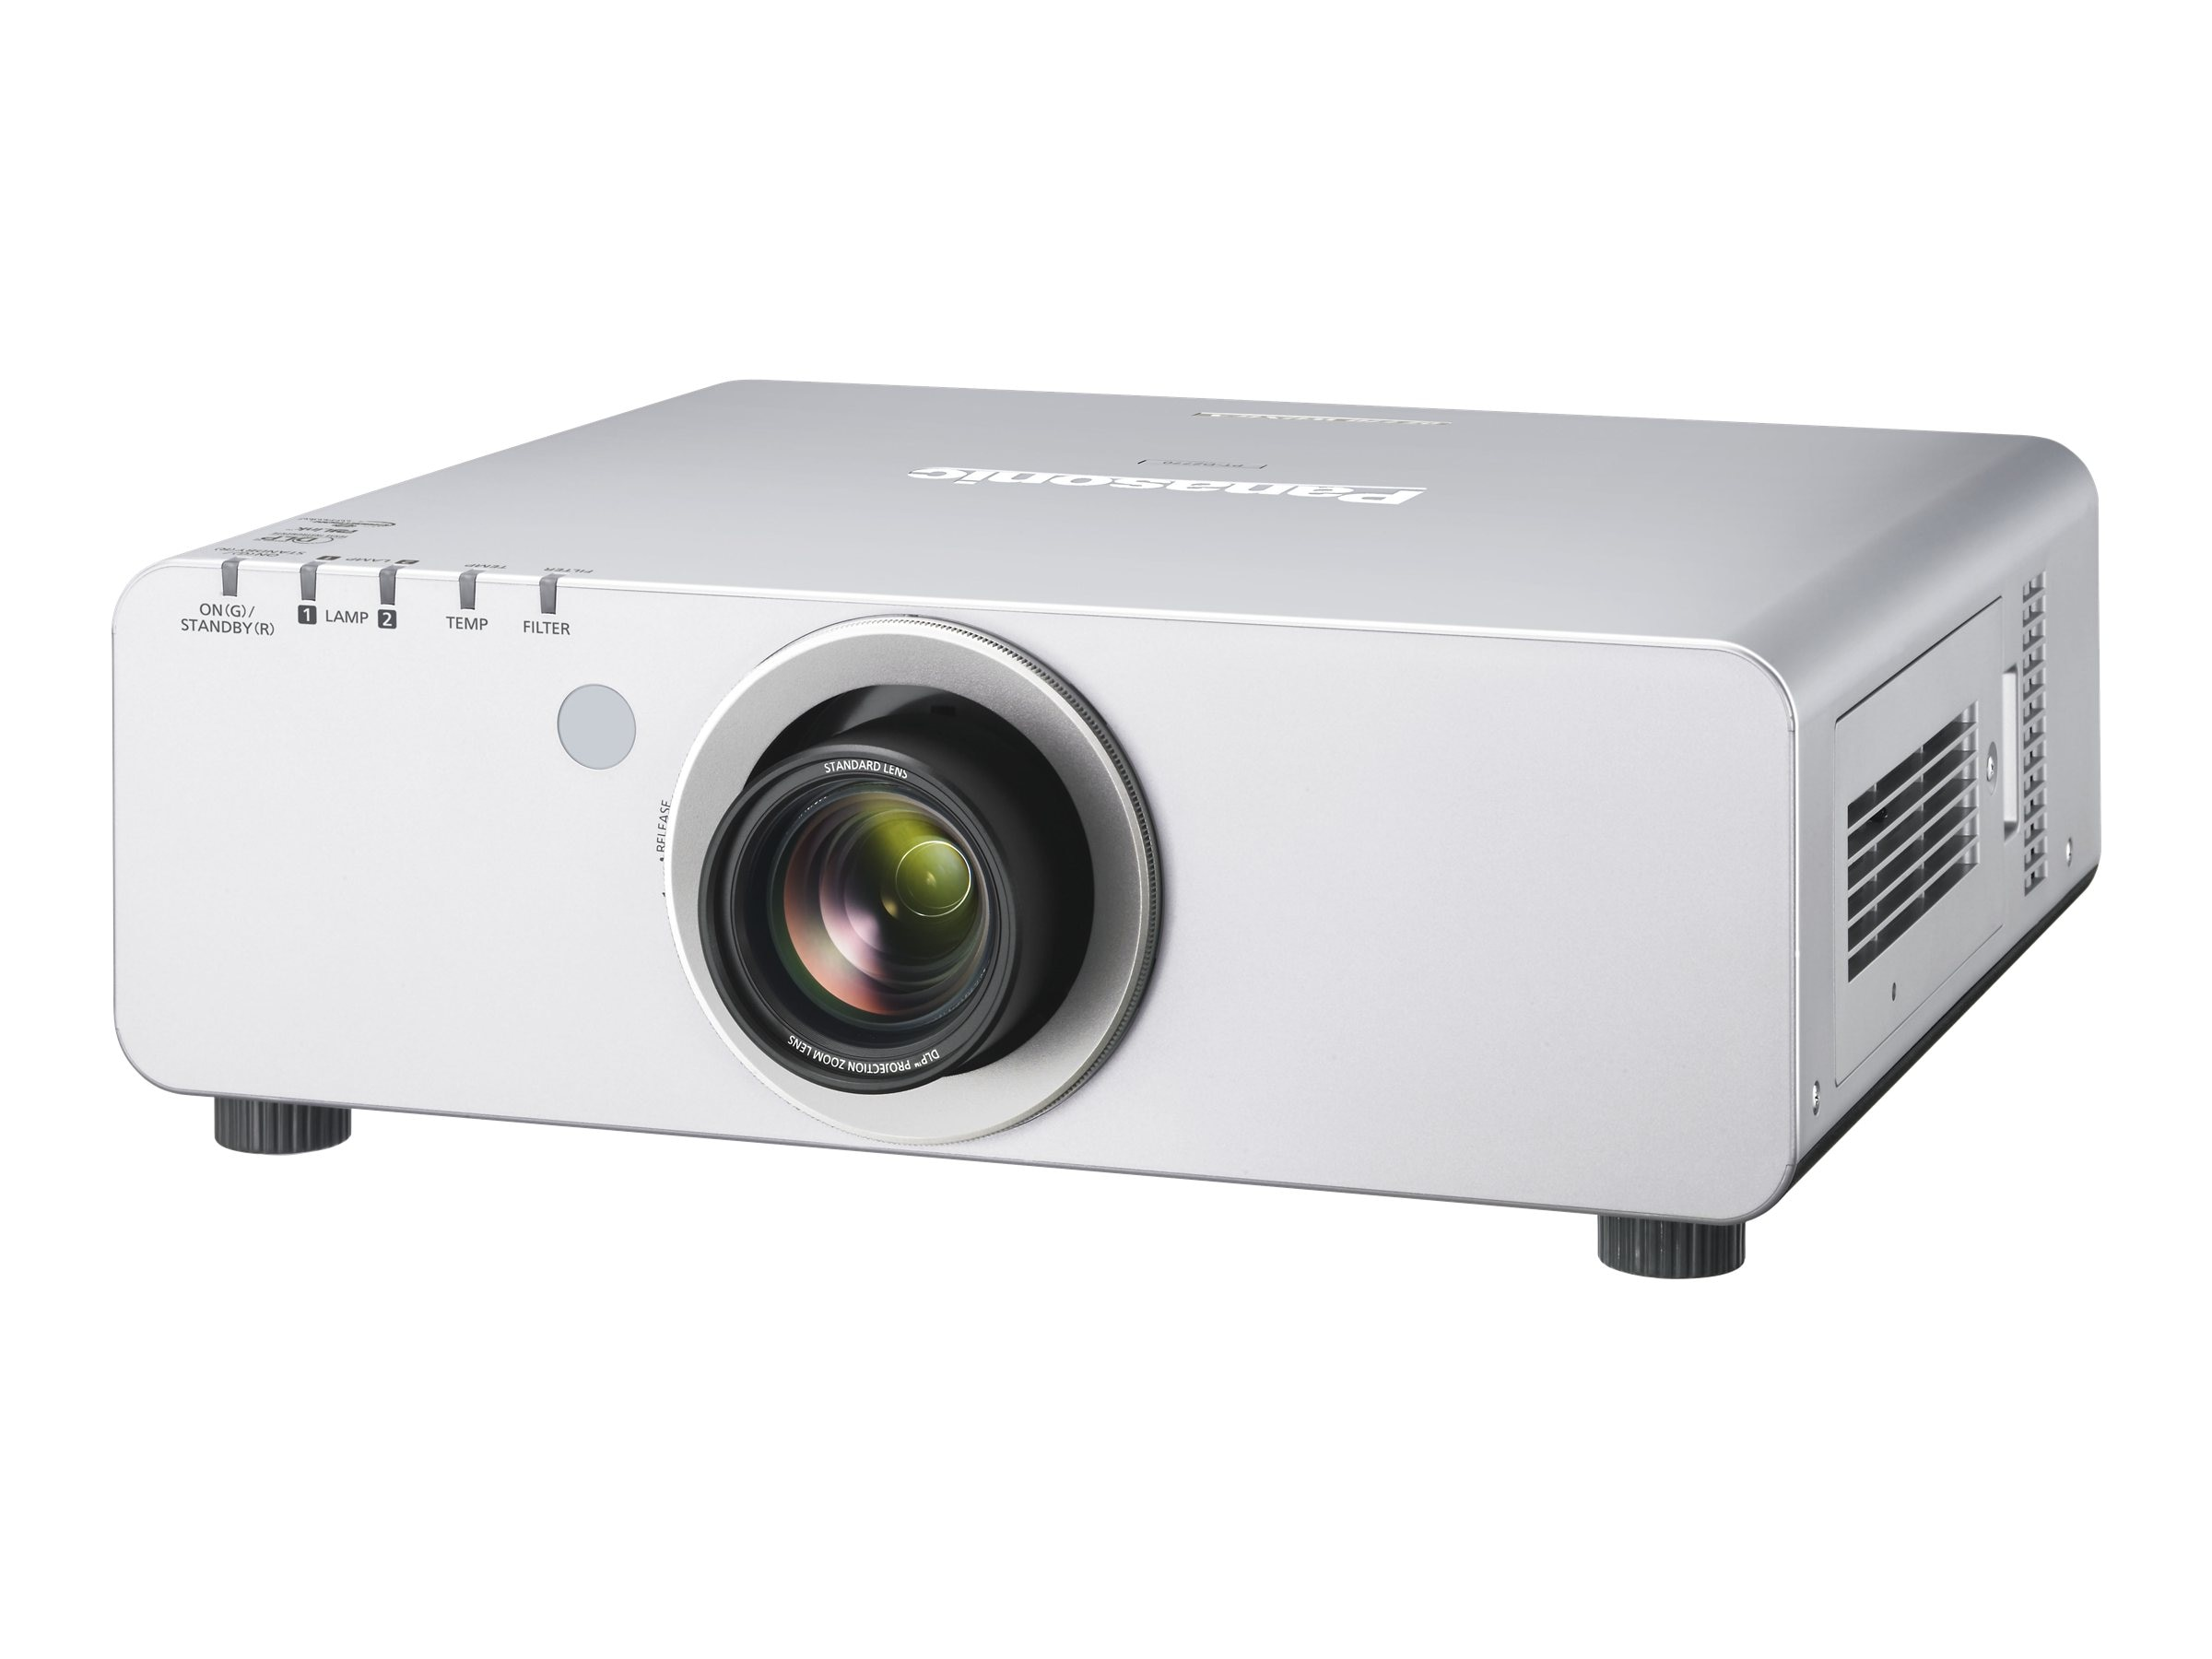 Panasonic PT-DZ770US Full HD DLP Projector, 7000 Lumens